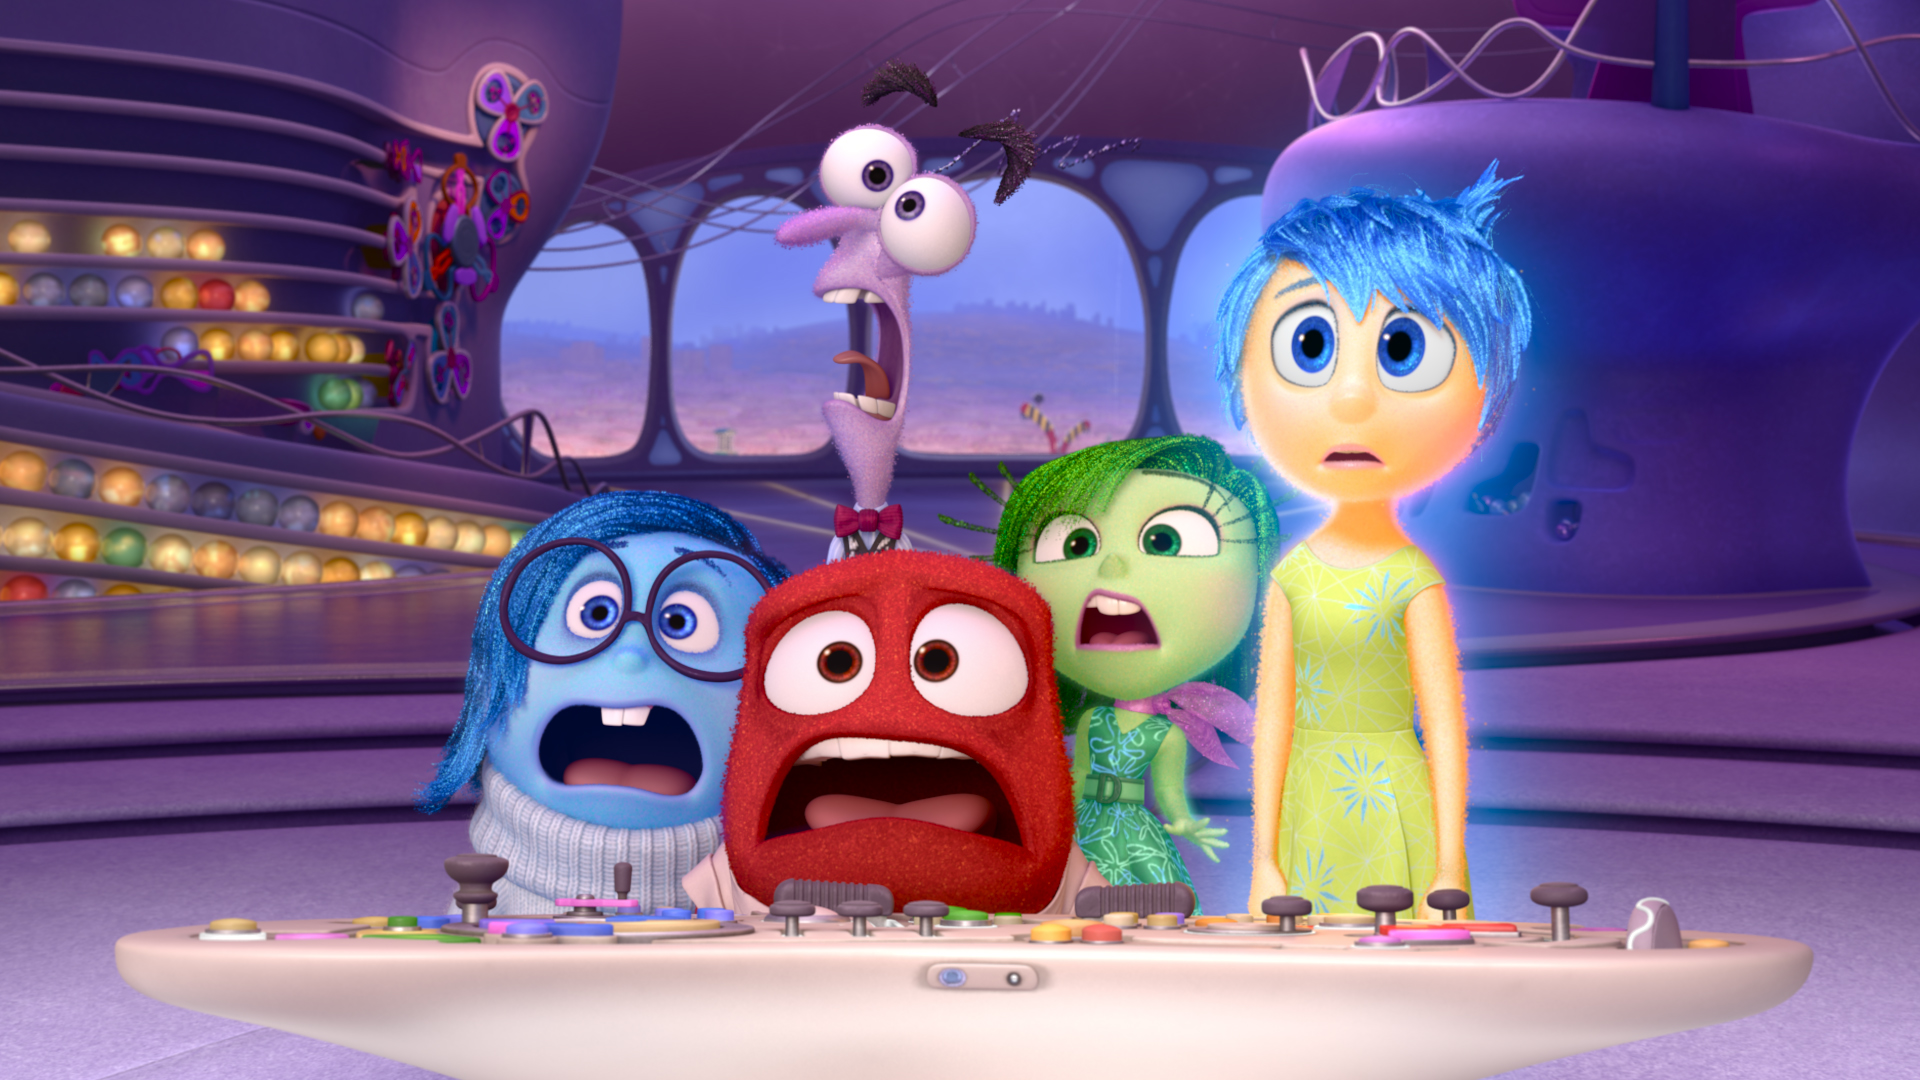 Inside Out features the worst Pixar character so far